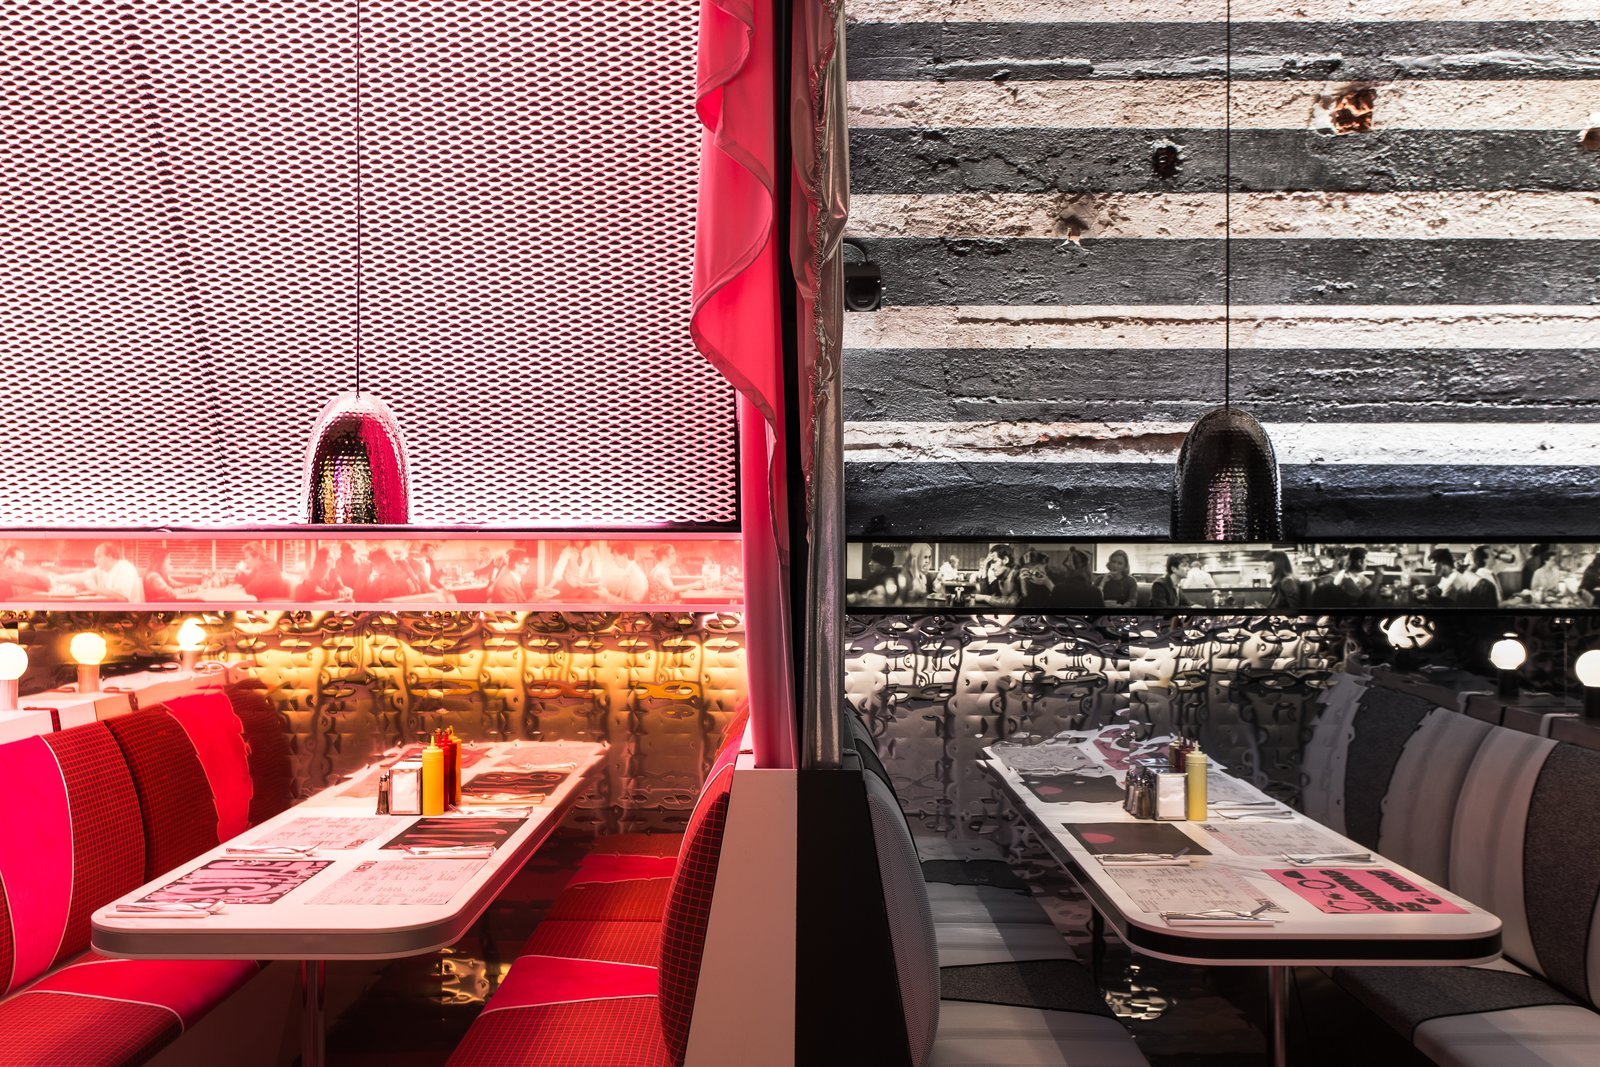 Architect David Rockwell and design studio 2x4 teamed up with Surface Media to realize The Diner, a fully operational greasy spoon in the heart of Milan.